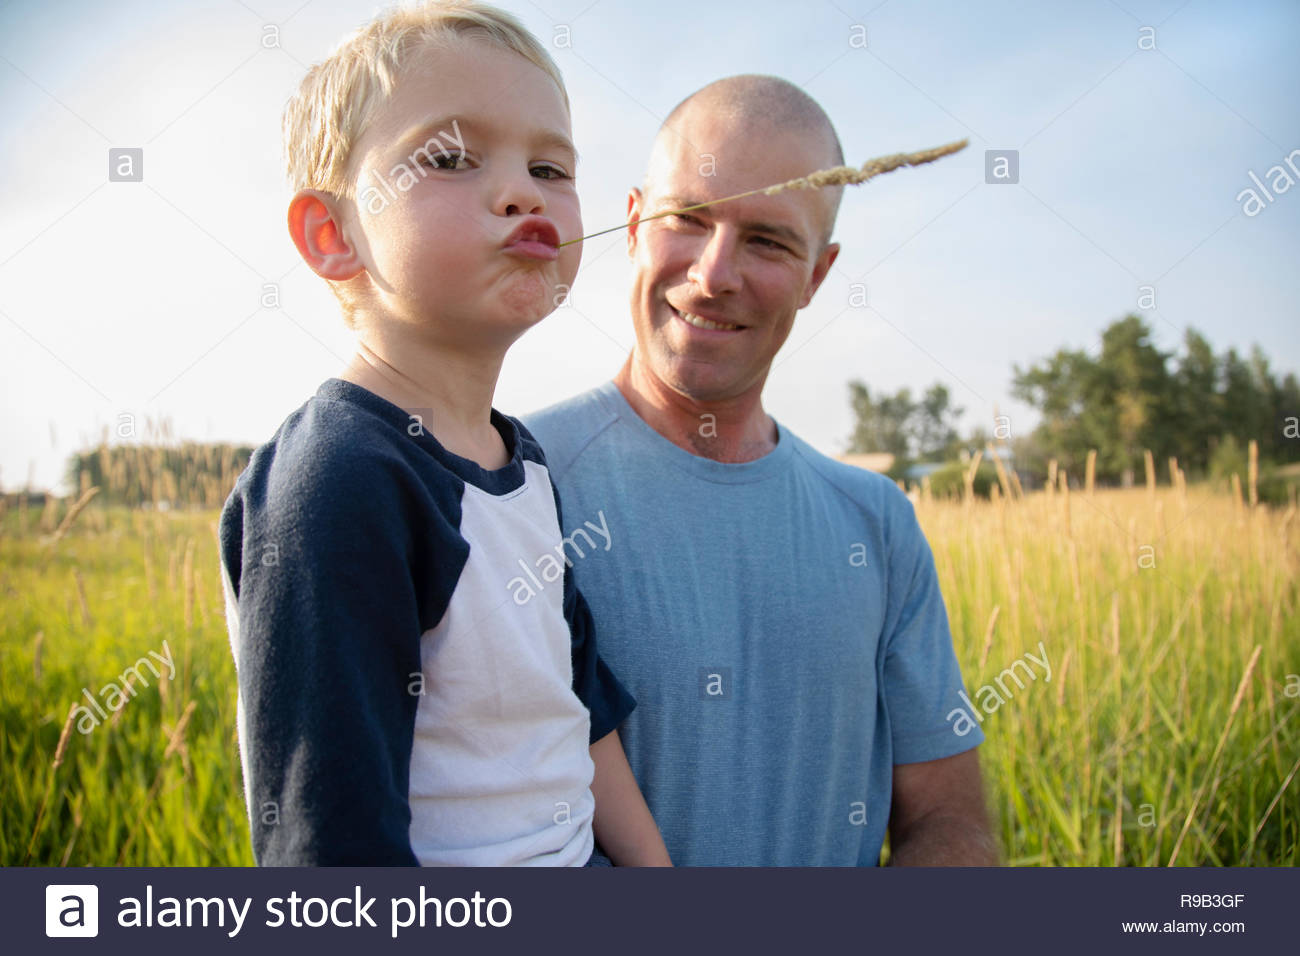 Portrait father holding son chewing on wheat stalk in rural field - Stock Image